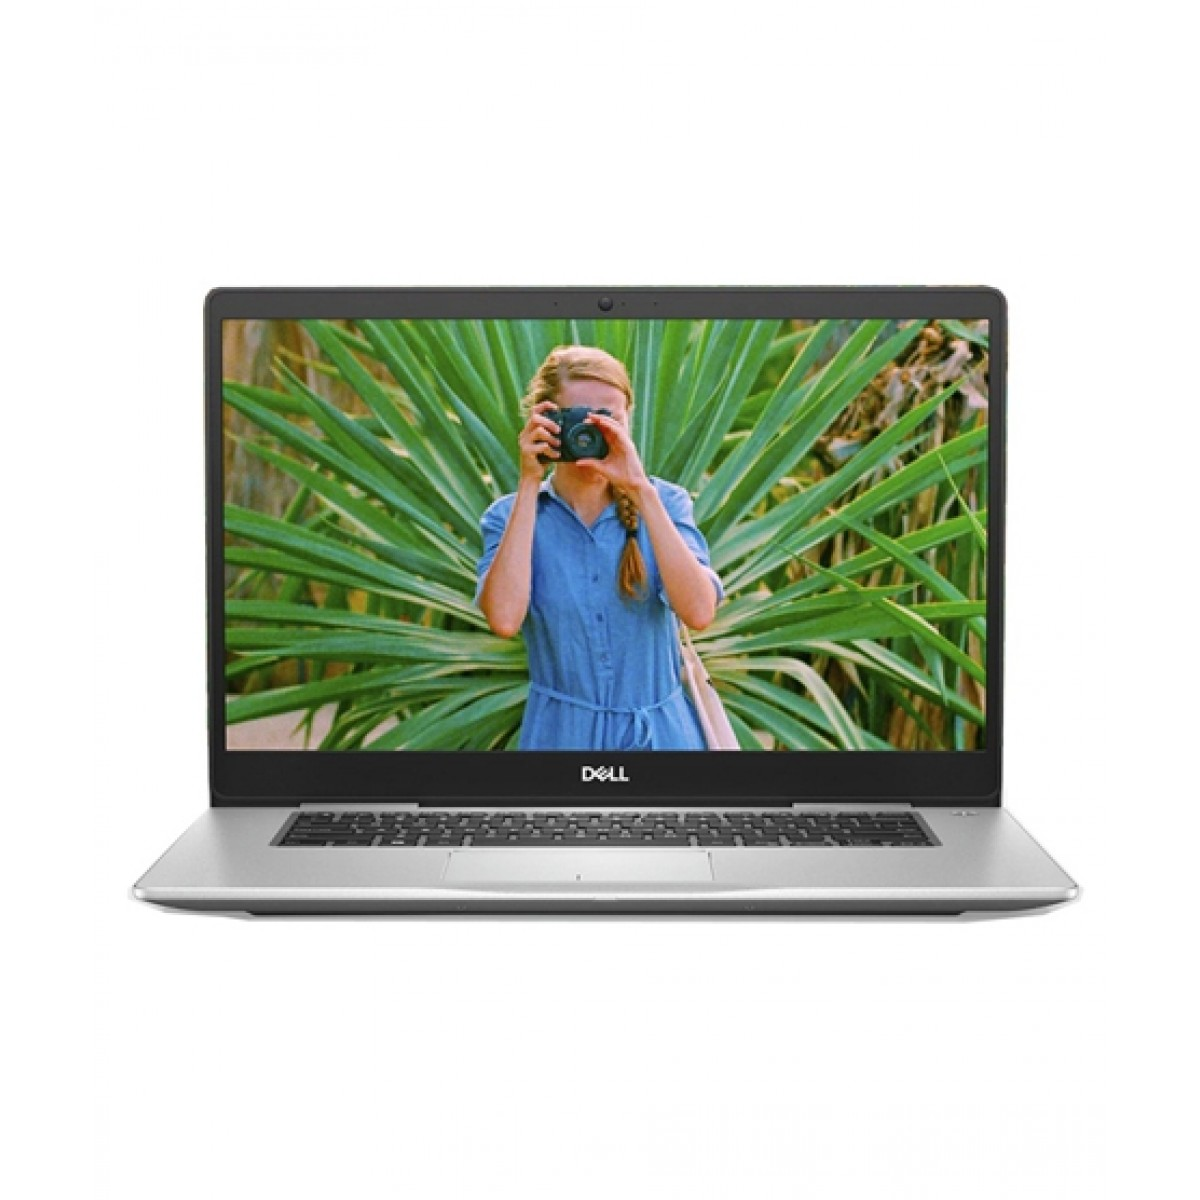 Dell Inspiron 15 7000 Series Core i7 8th Gen 8GB 1TB GeForce 940MX Touch  Gaming Laptop (7570) - Without Warranty